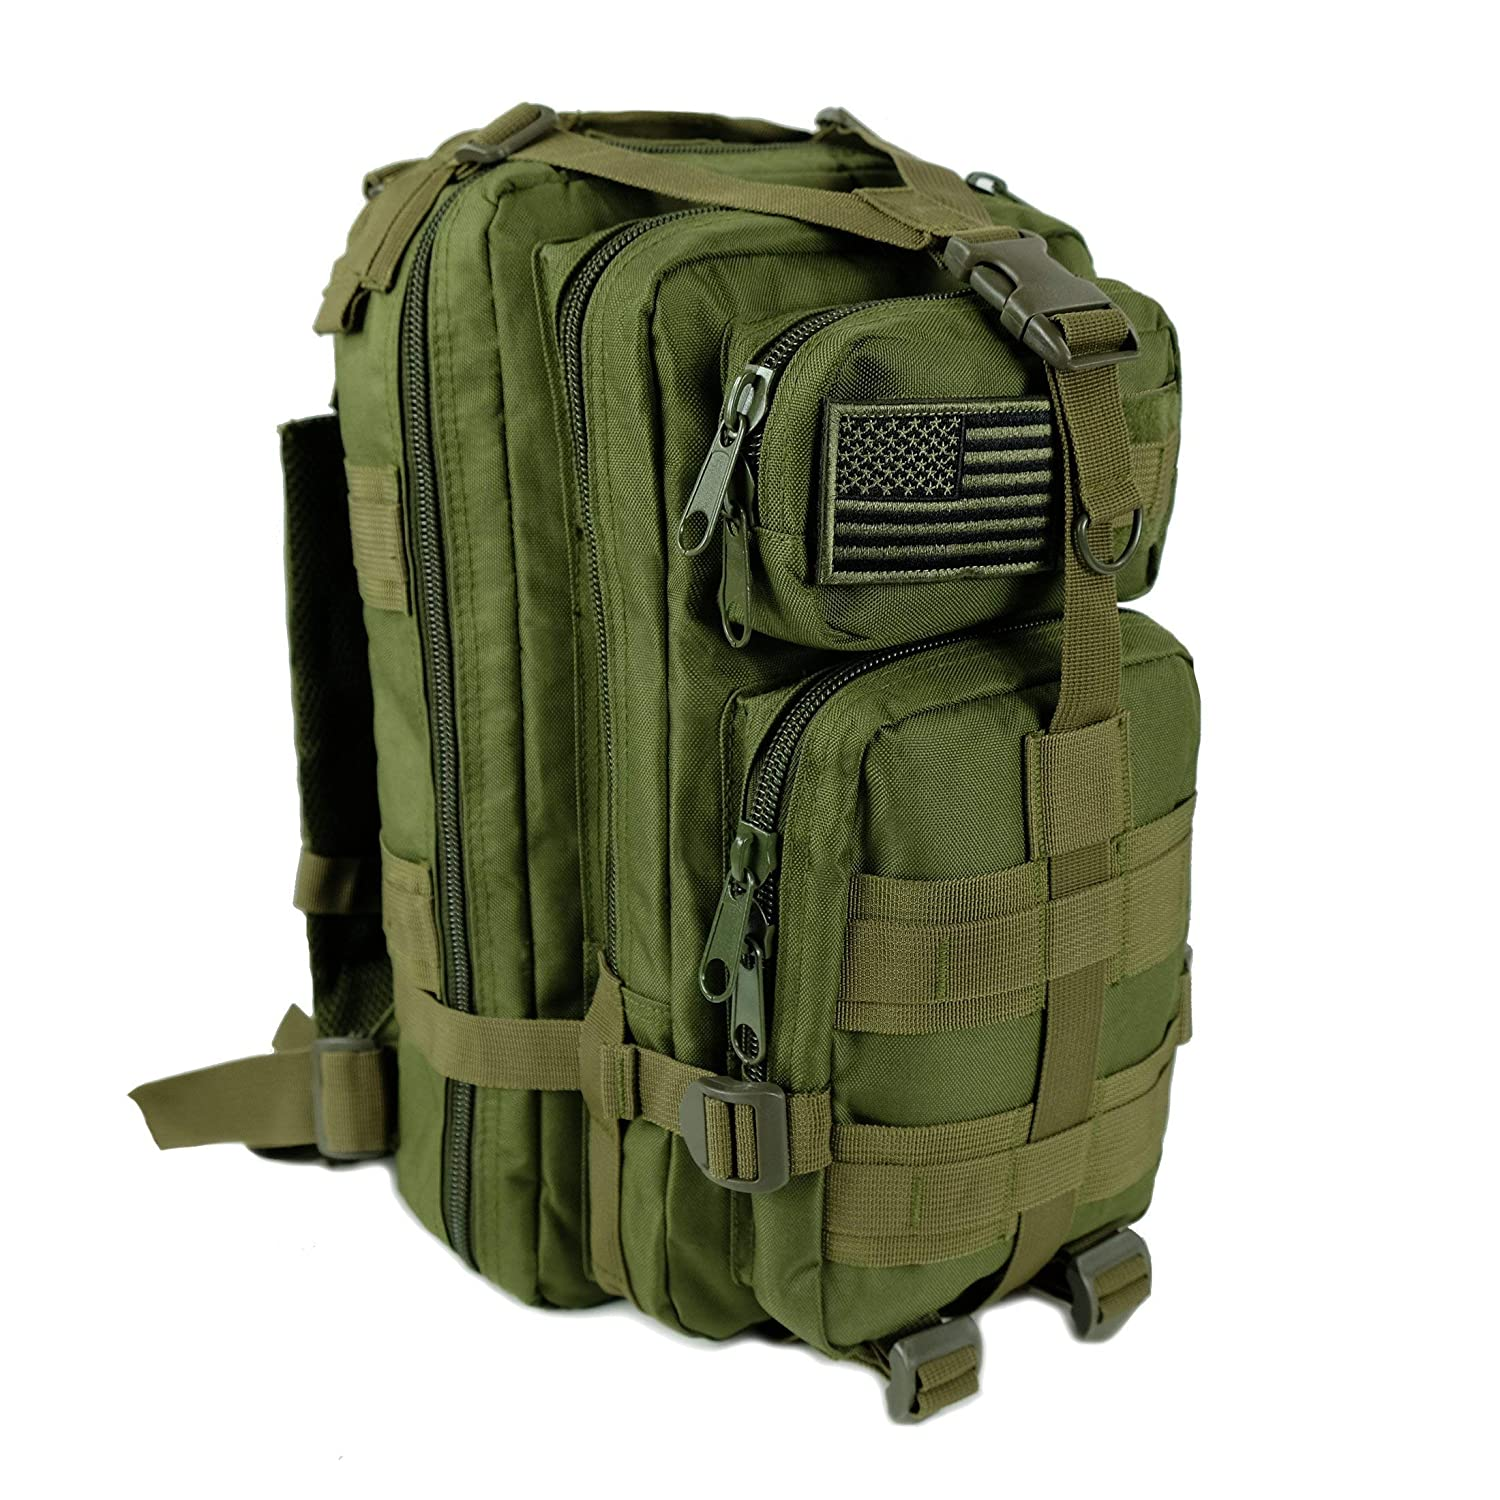 Tactical Ops Military Tactical Backpack Army Combat 3 Day Assault Pack Molle Bug Out Bag Rucksacks for Outdoor Hiking Camping Trekking Traveling and Hunting with Flag Patches (Green, 30L) [並行輸入品] B07R3Y9LL1